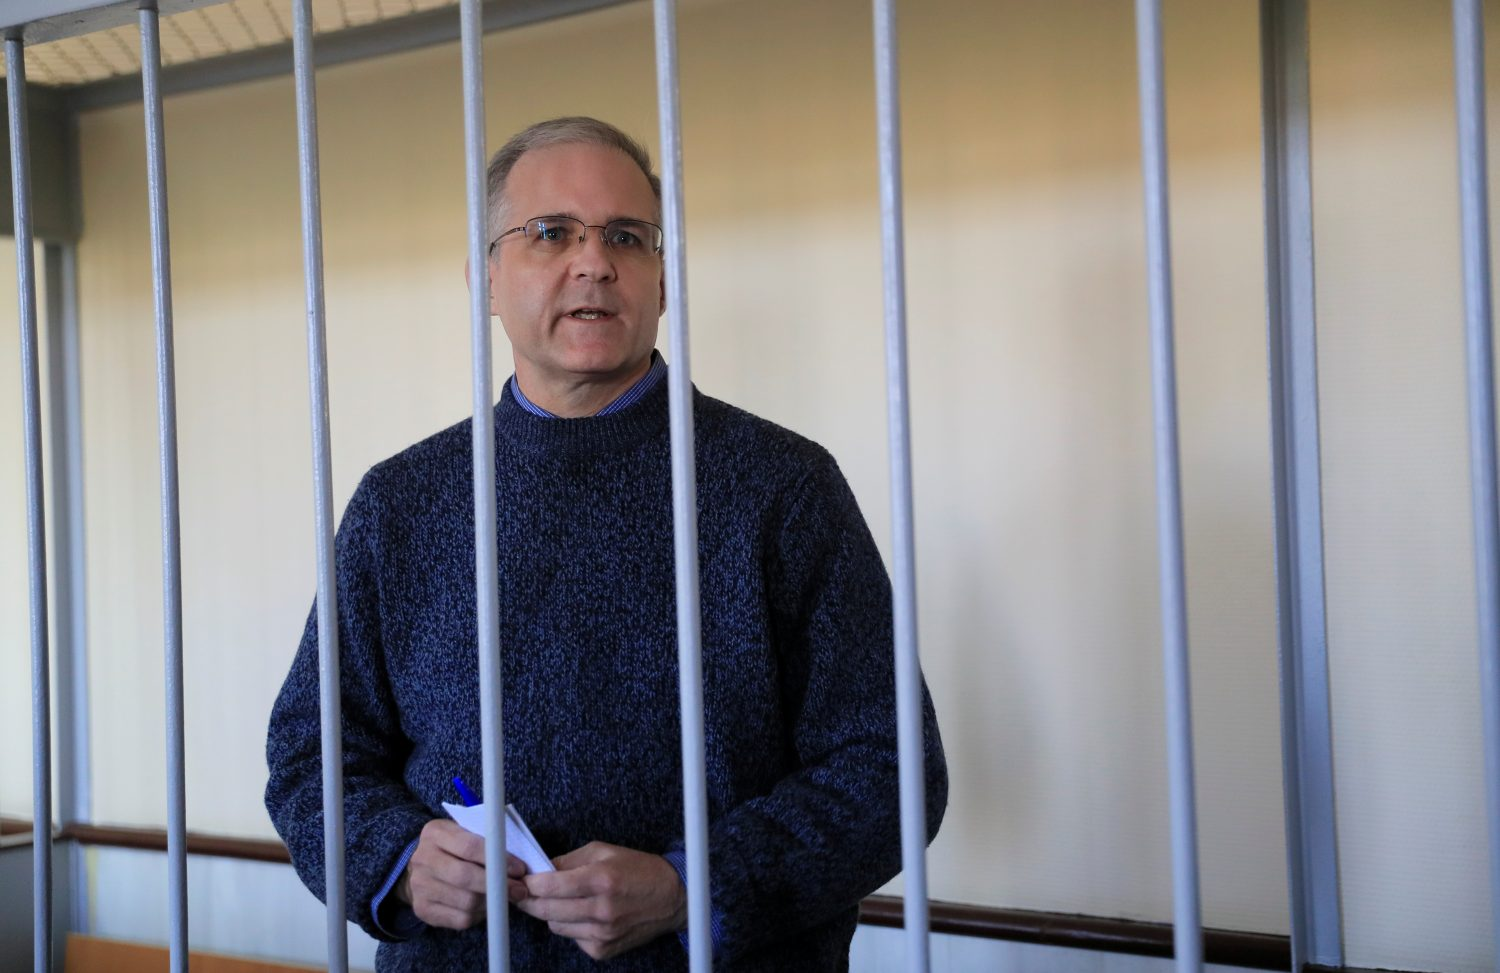 Former U.S. Marine Paul Whelan, who was detained and accused of espionage, stands inside a defendants' cage before a court hearing in Moscow, Russia August 23, 2019. REUTERS/Tatyana Makeyeva